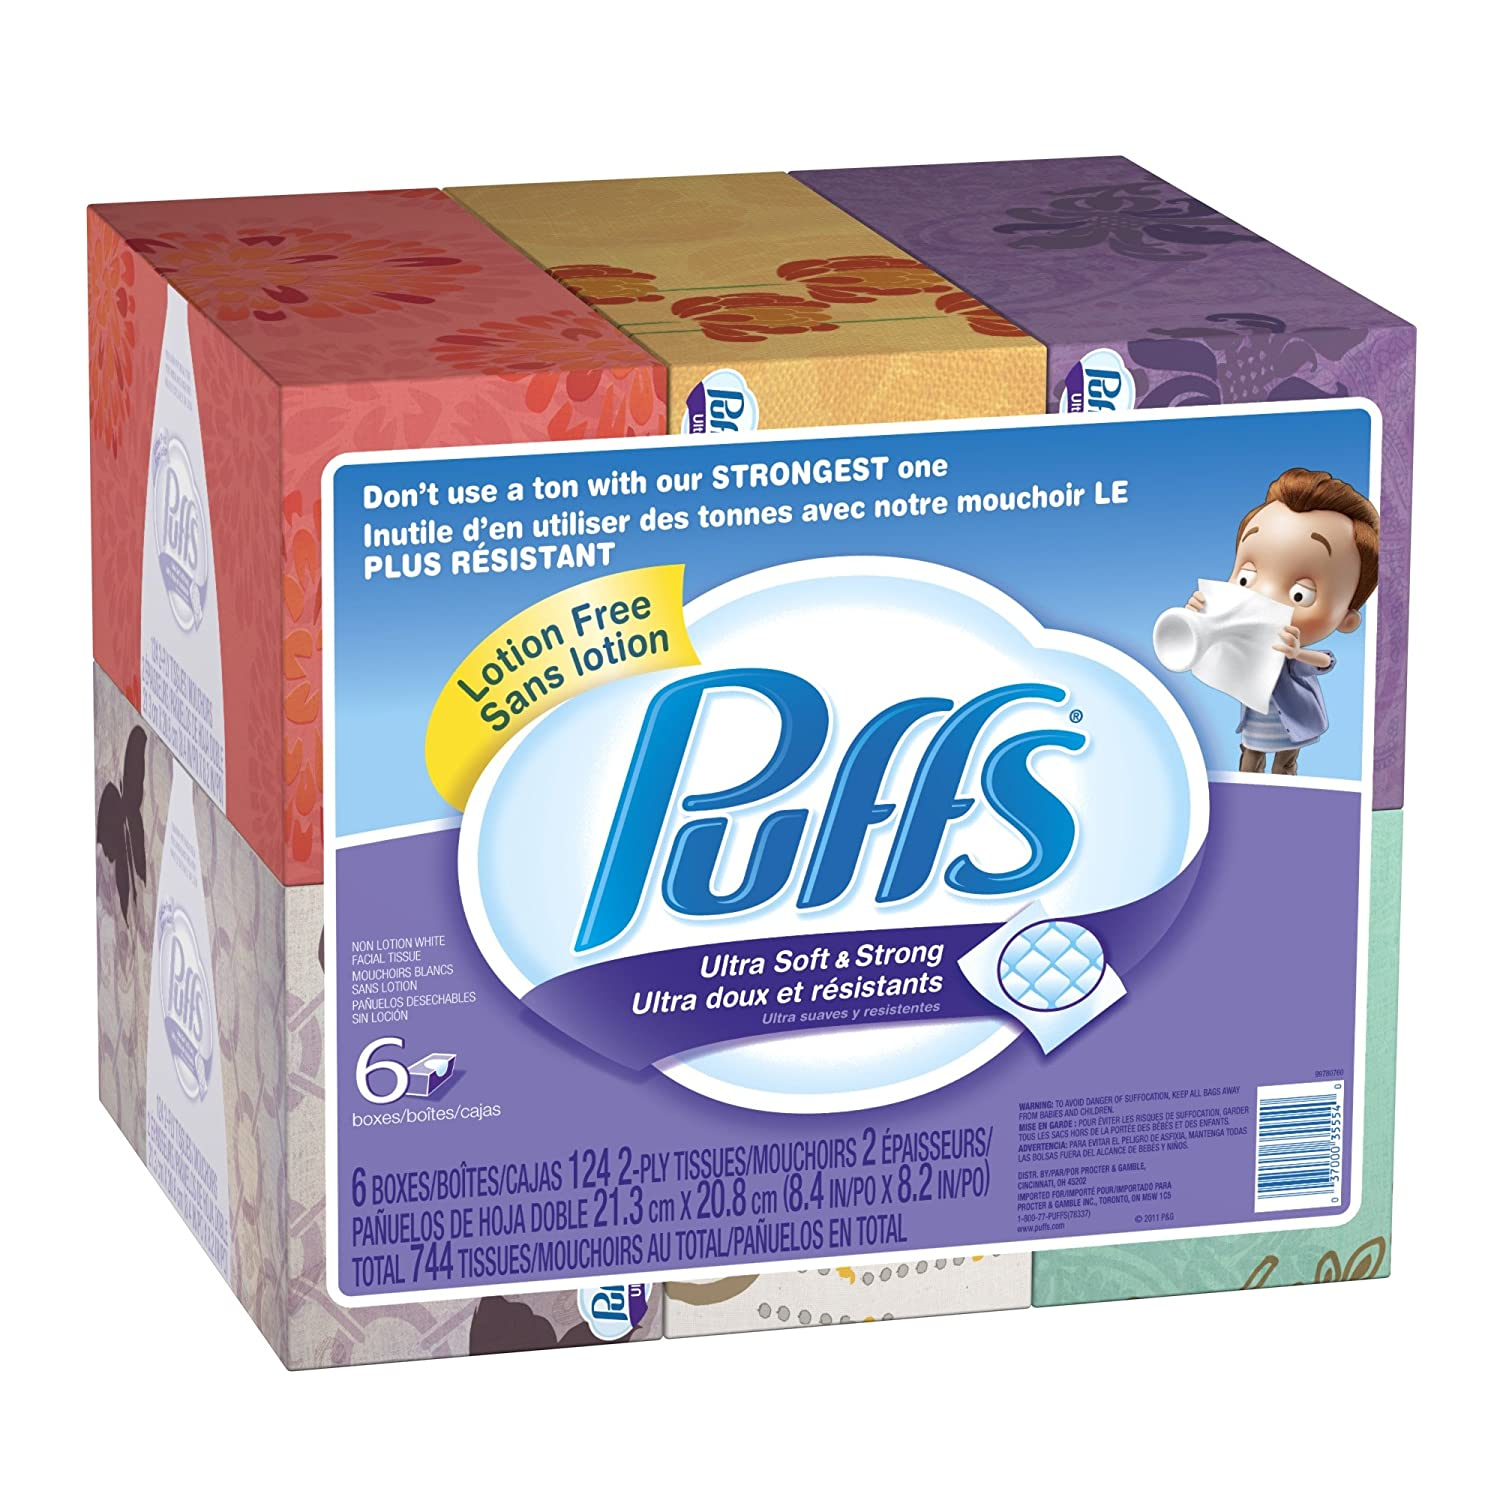 Puffs Ultra Soft and Strong Facial Tissues, 6 Pack of 124-Count Family Boxes (Packaging May Vary) $9.12